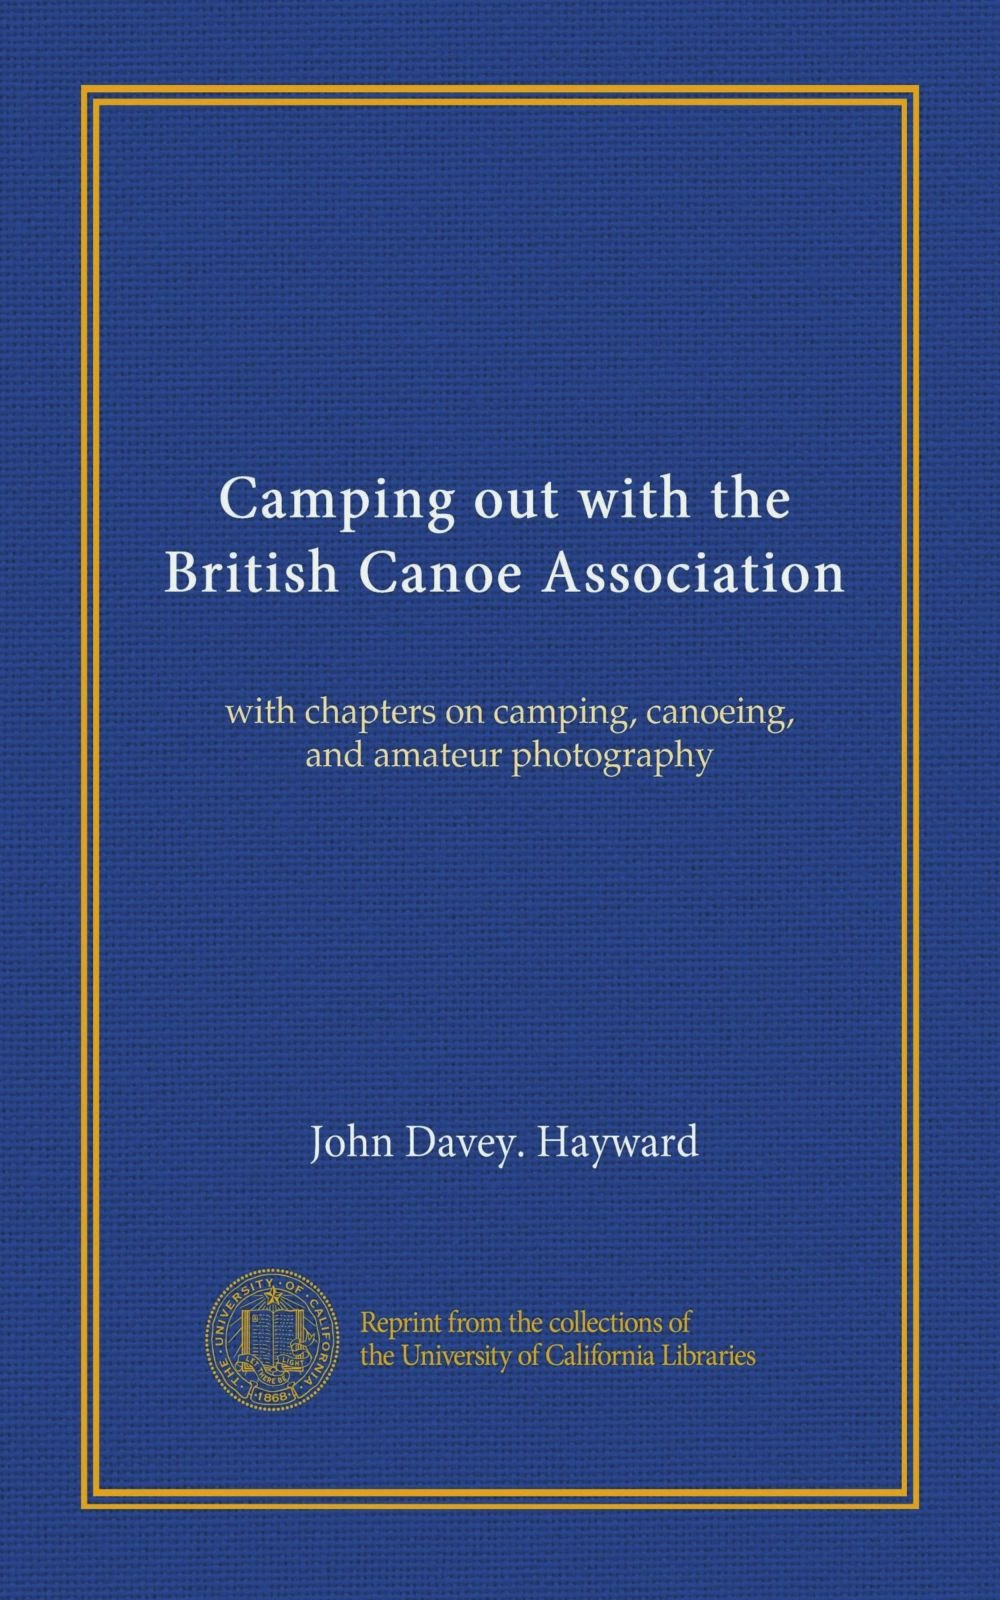 Read Online Camping out with the British Canoe Association: with chapters on camping, canoeing, and amateur photography PDF